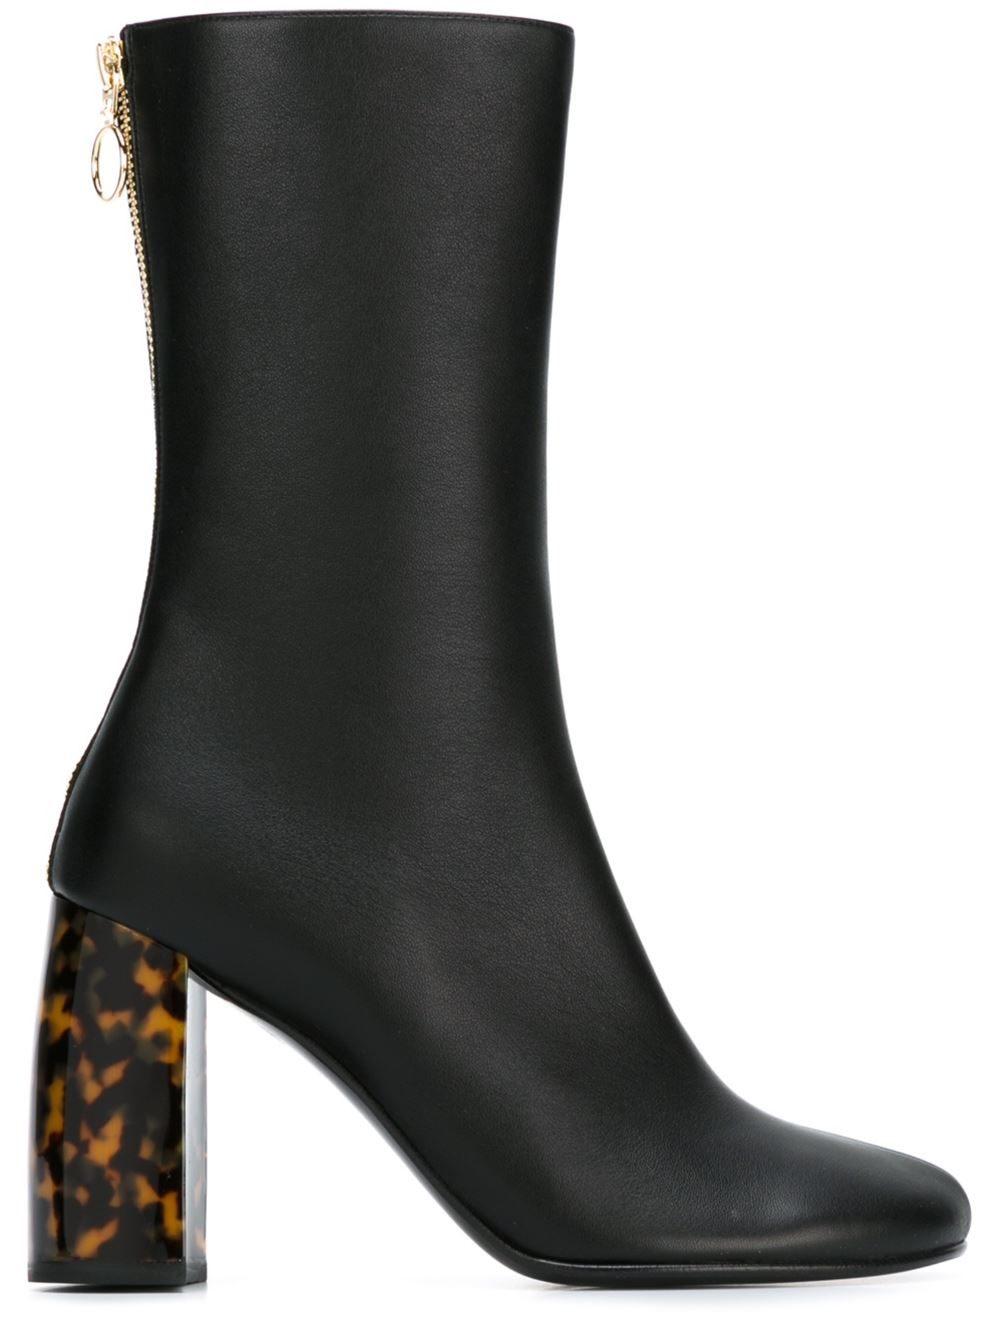 Stella mccartney Tortoiseshell Faux Leather Ankle Boots in ...